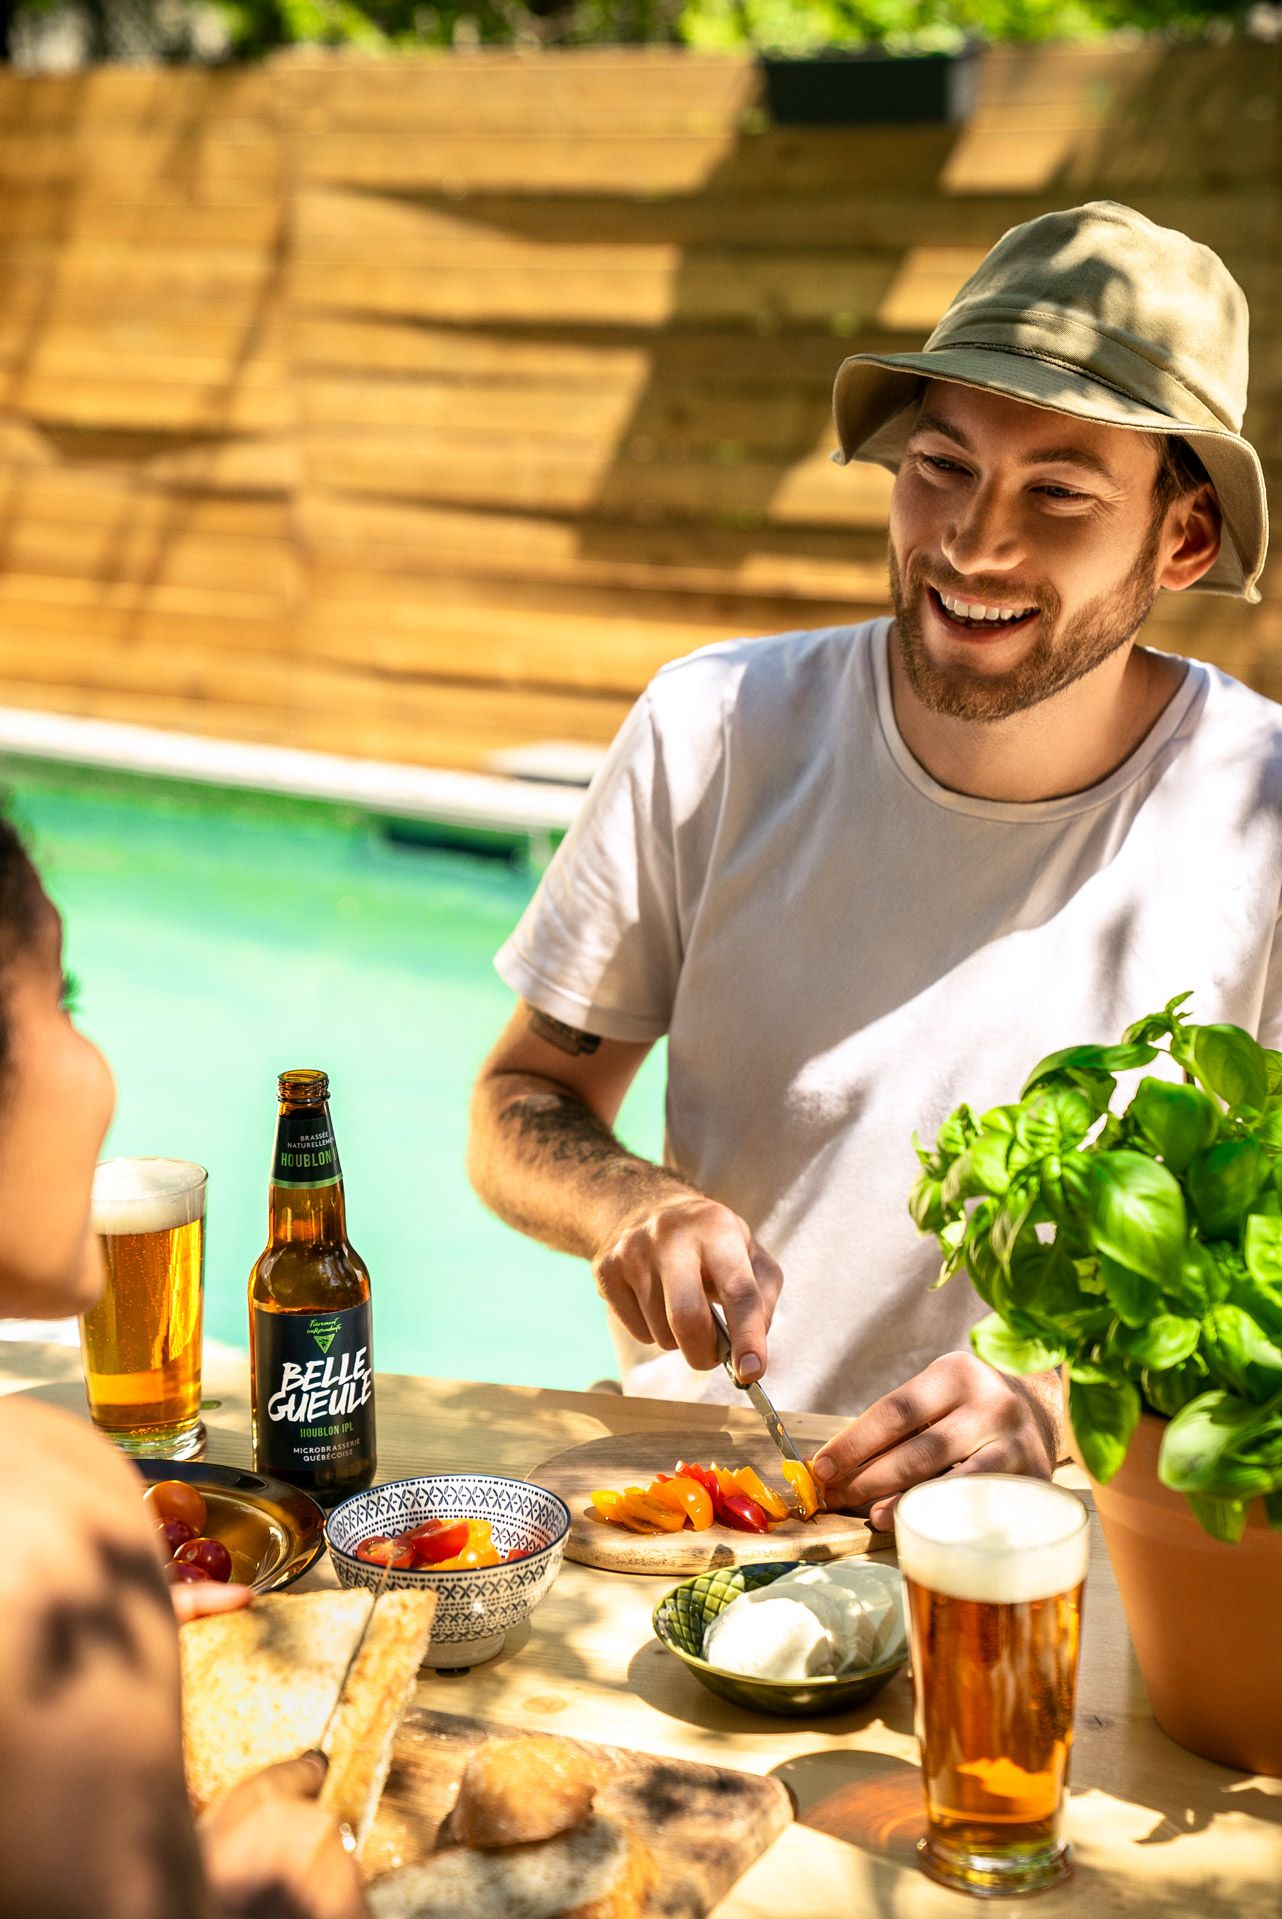 bearded man cutting small tomatoes on table while drinking beer and talking with woman in front of him wearing white shirt and beige bob hat with pool in the background photographed by Bruno Florin for Belle Gueule with Forsman & Bodenfors